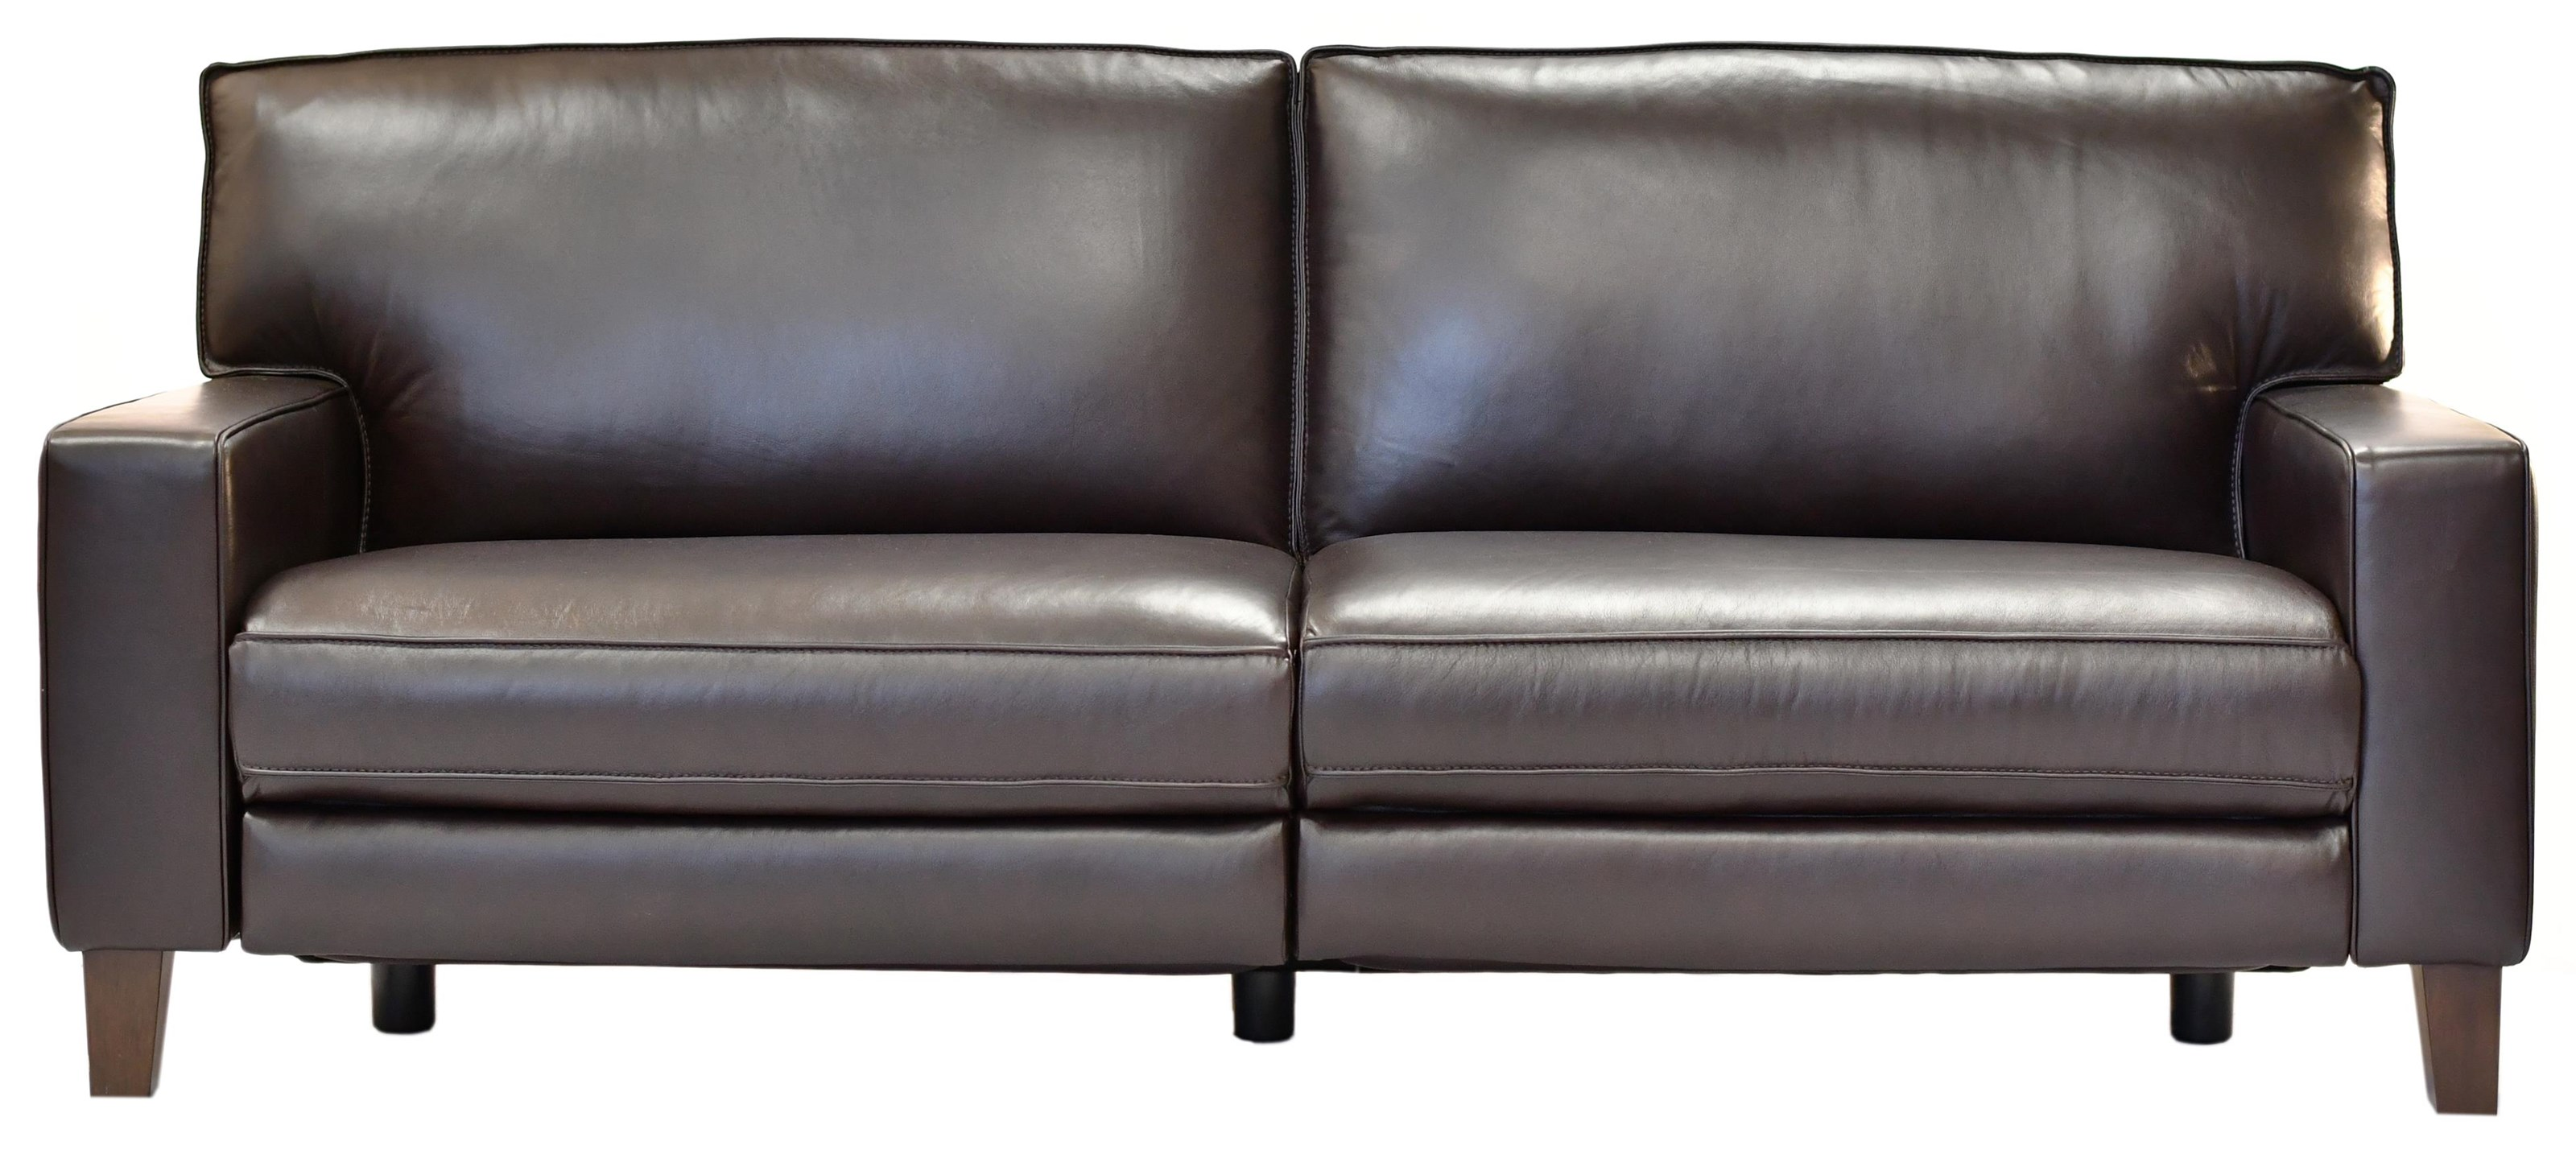 32644EC Leather Power Reclining Sofa at Bennett's Furniture and Mattresses